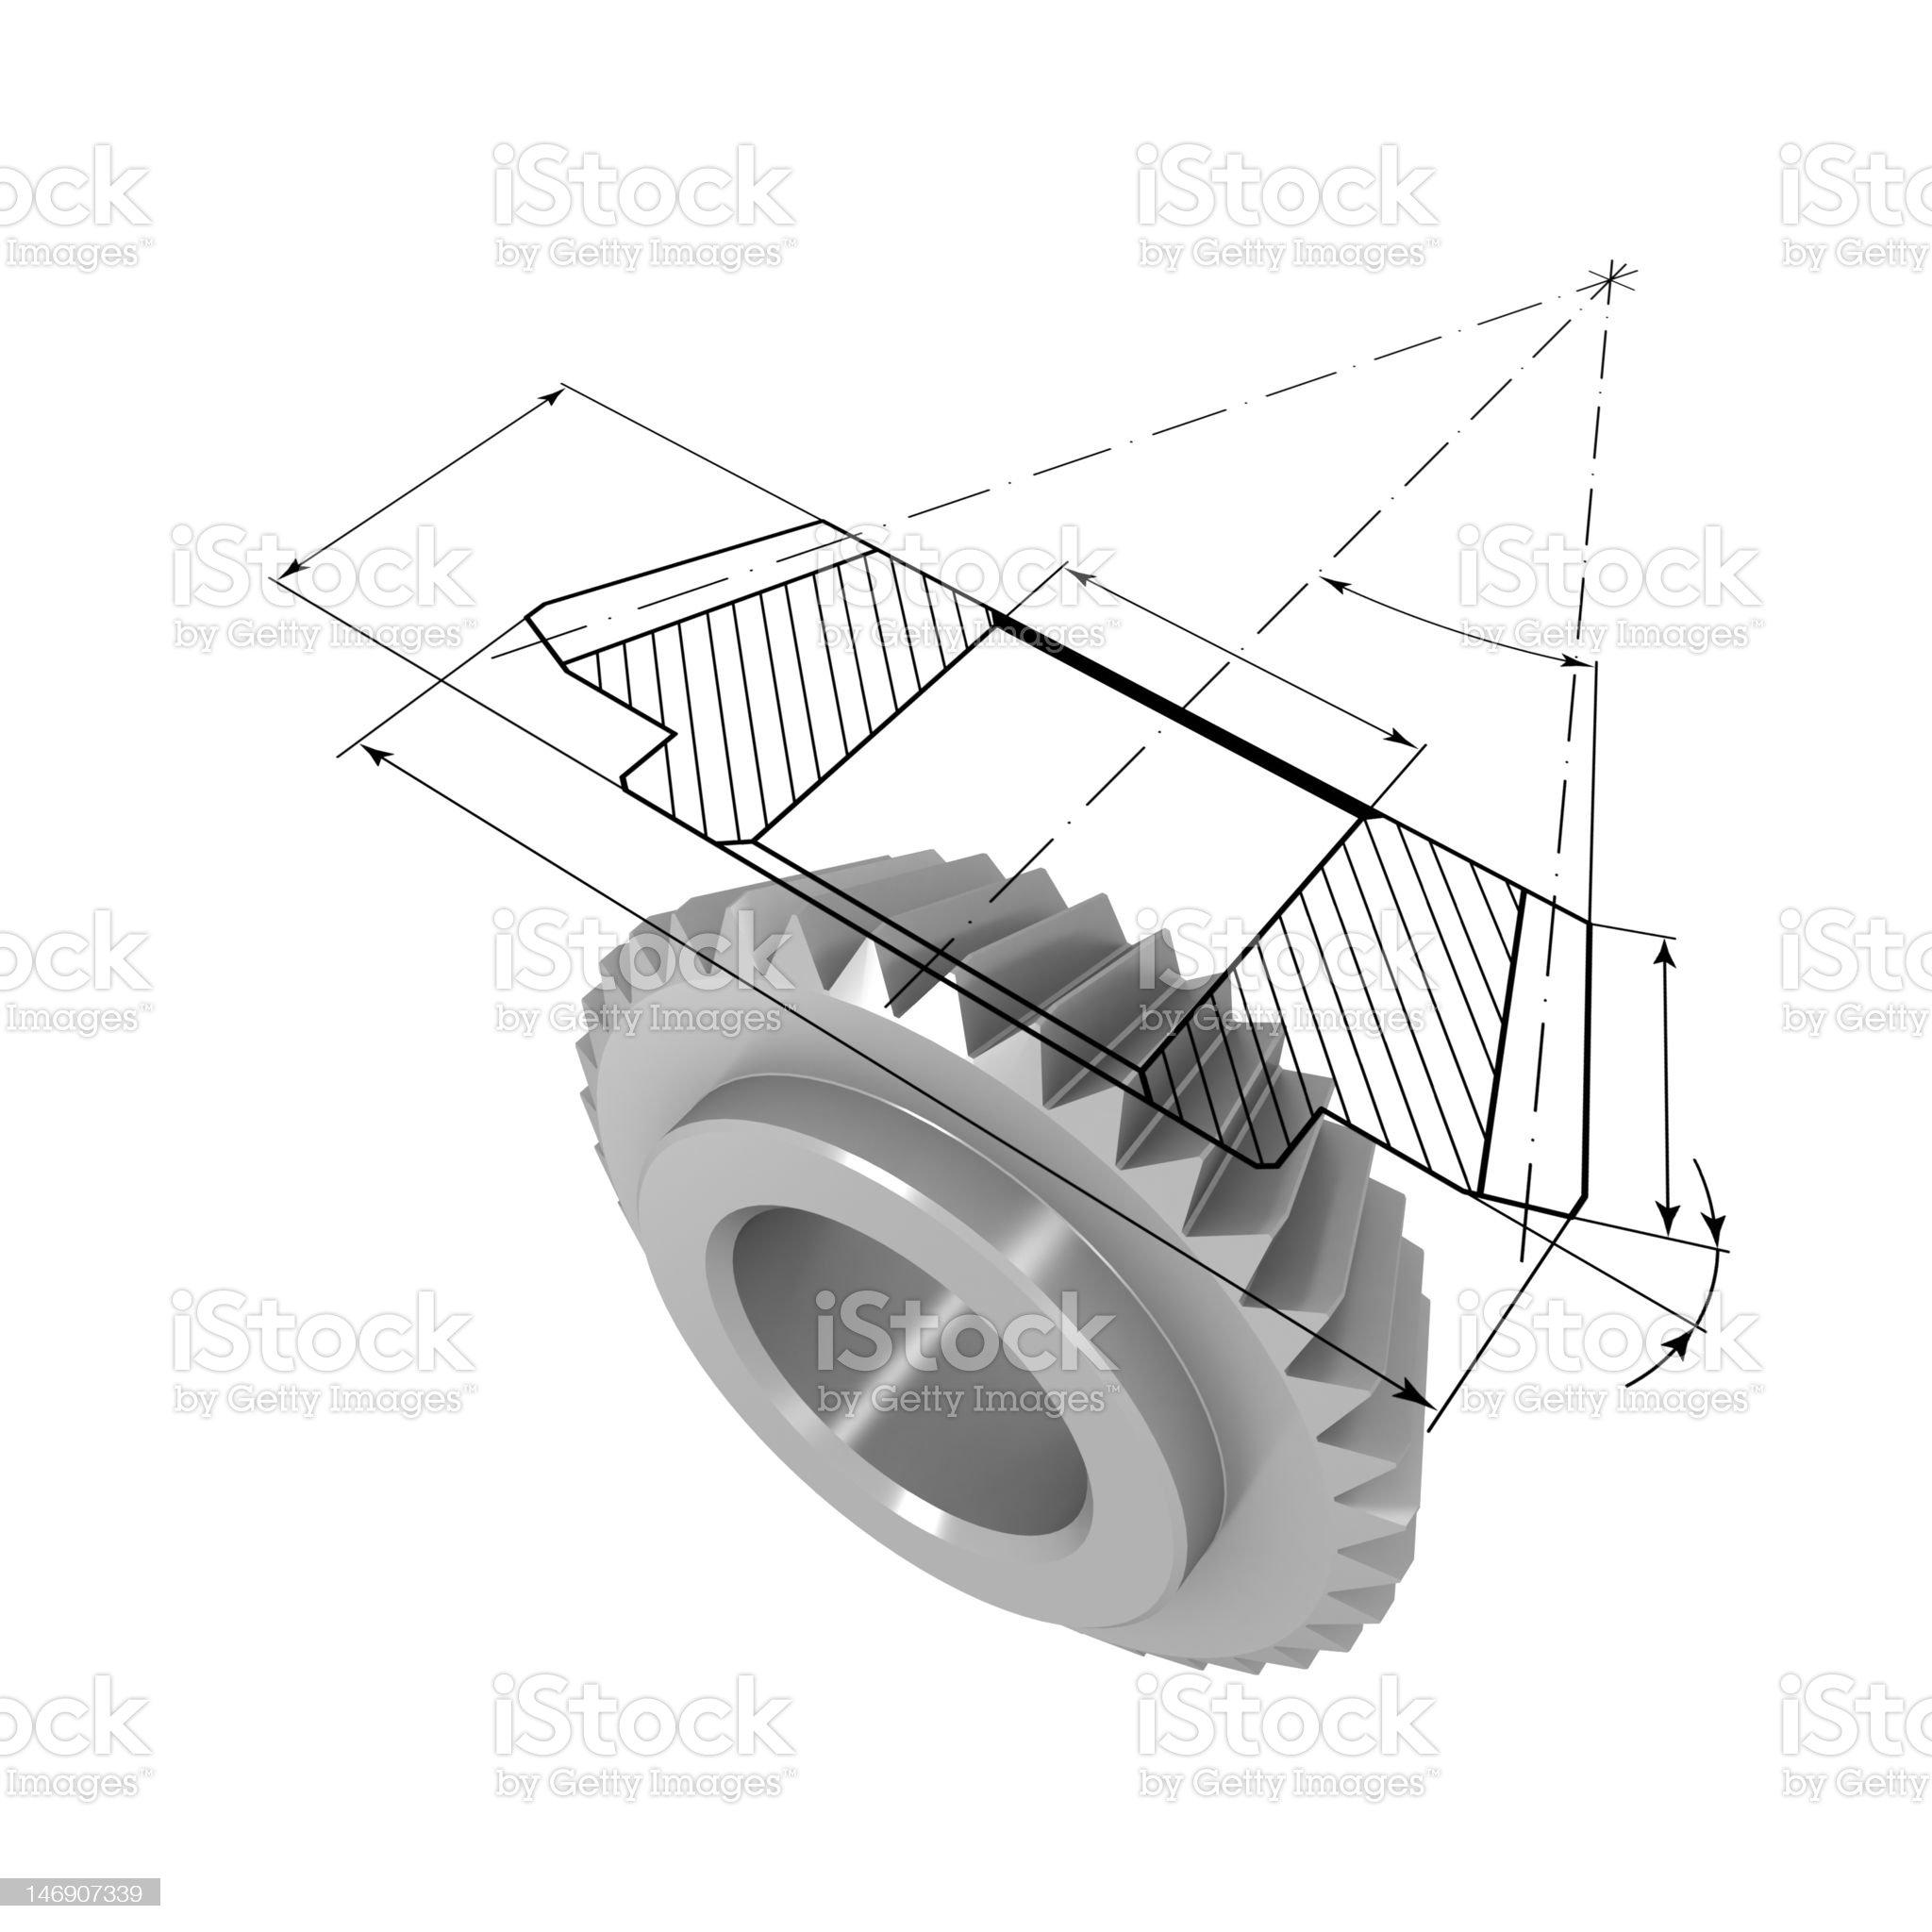 Gear and drawing royalty-free stock photo